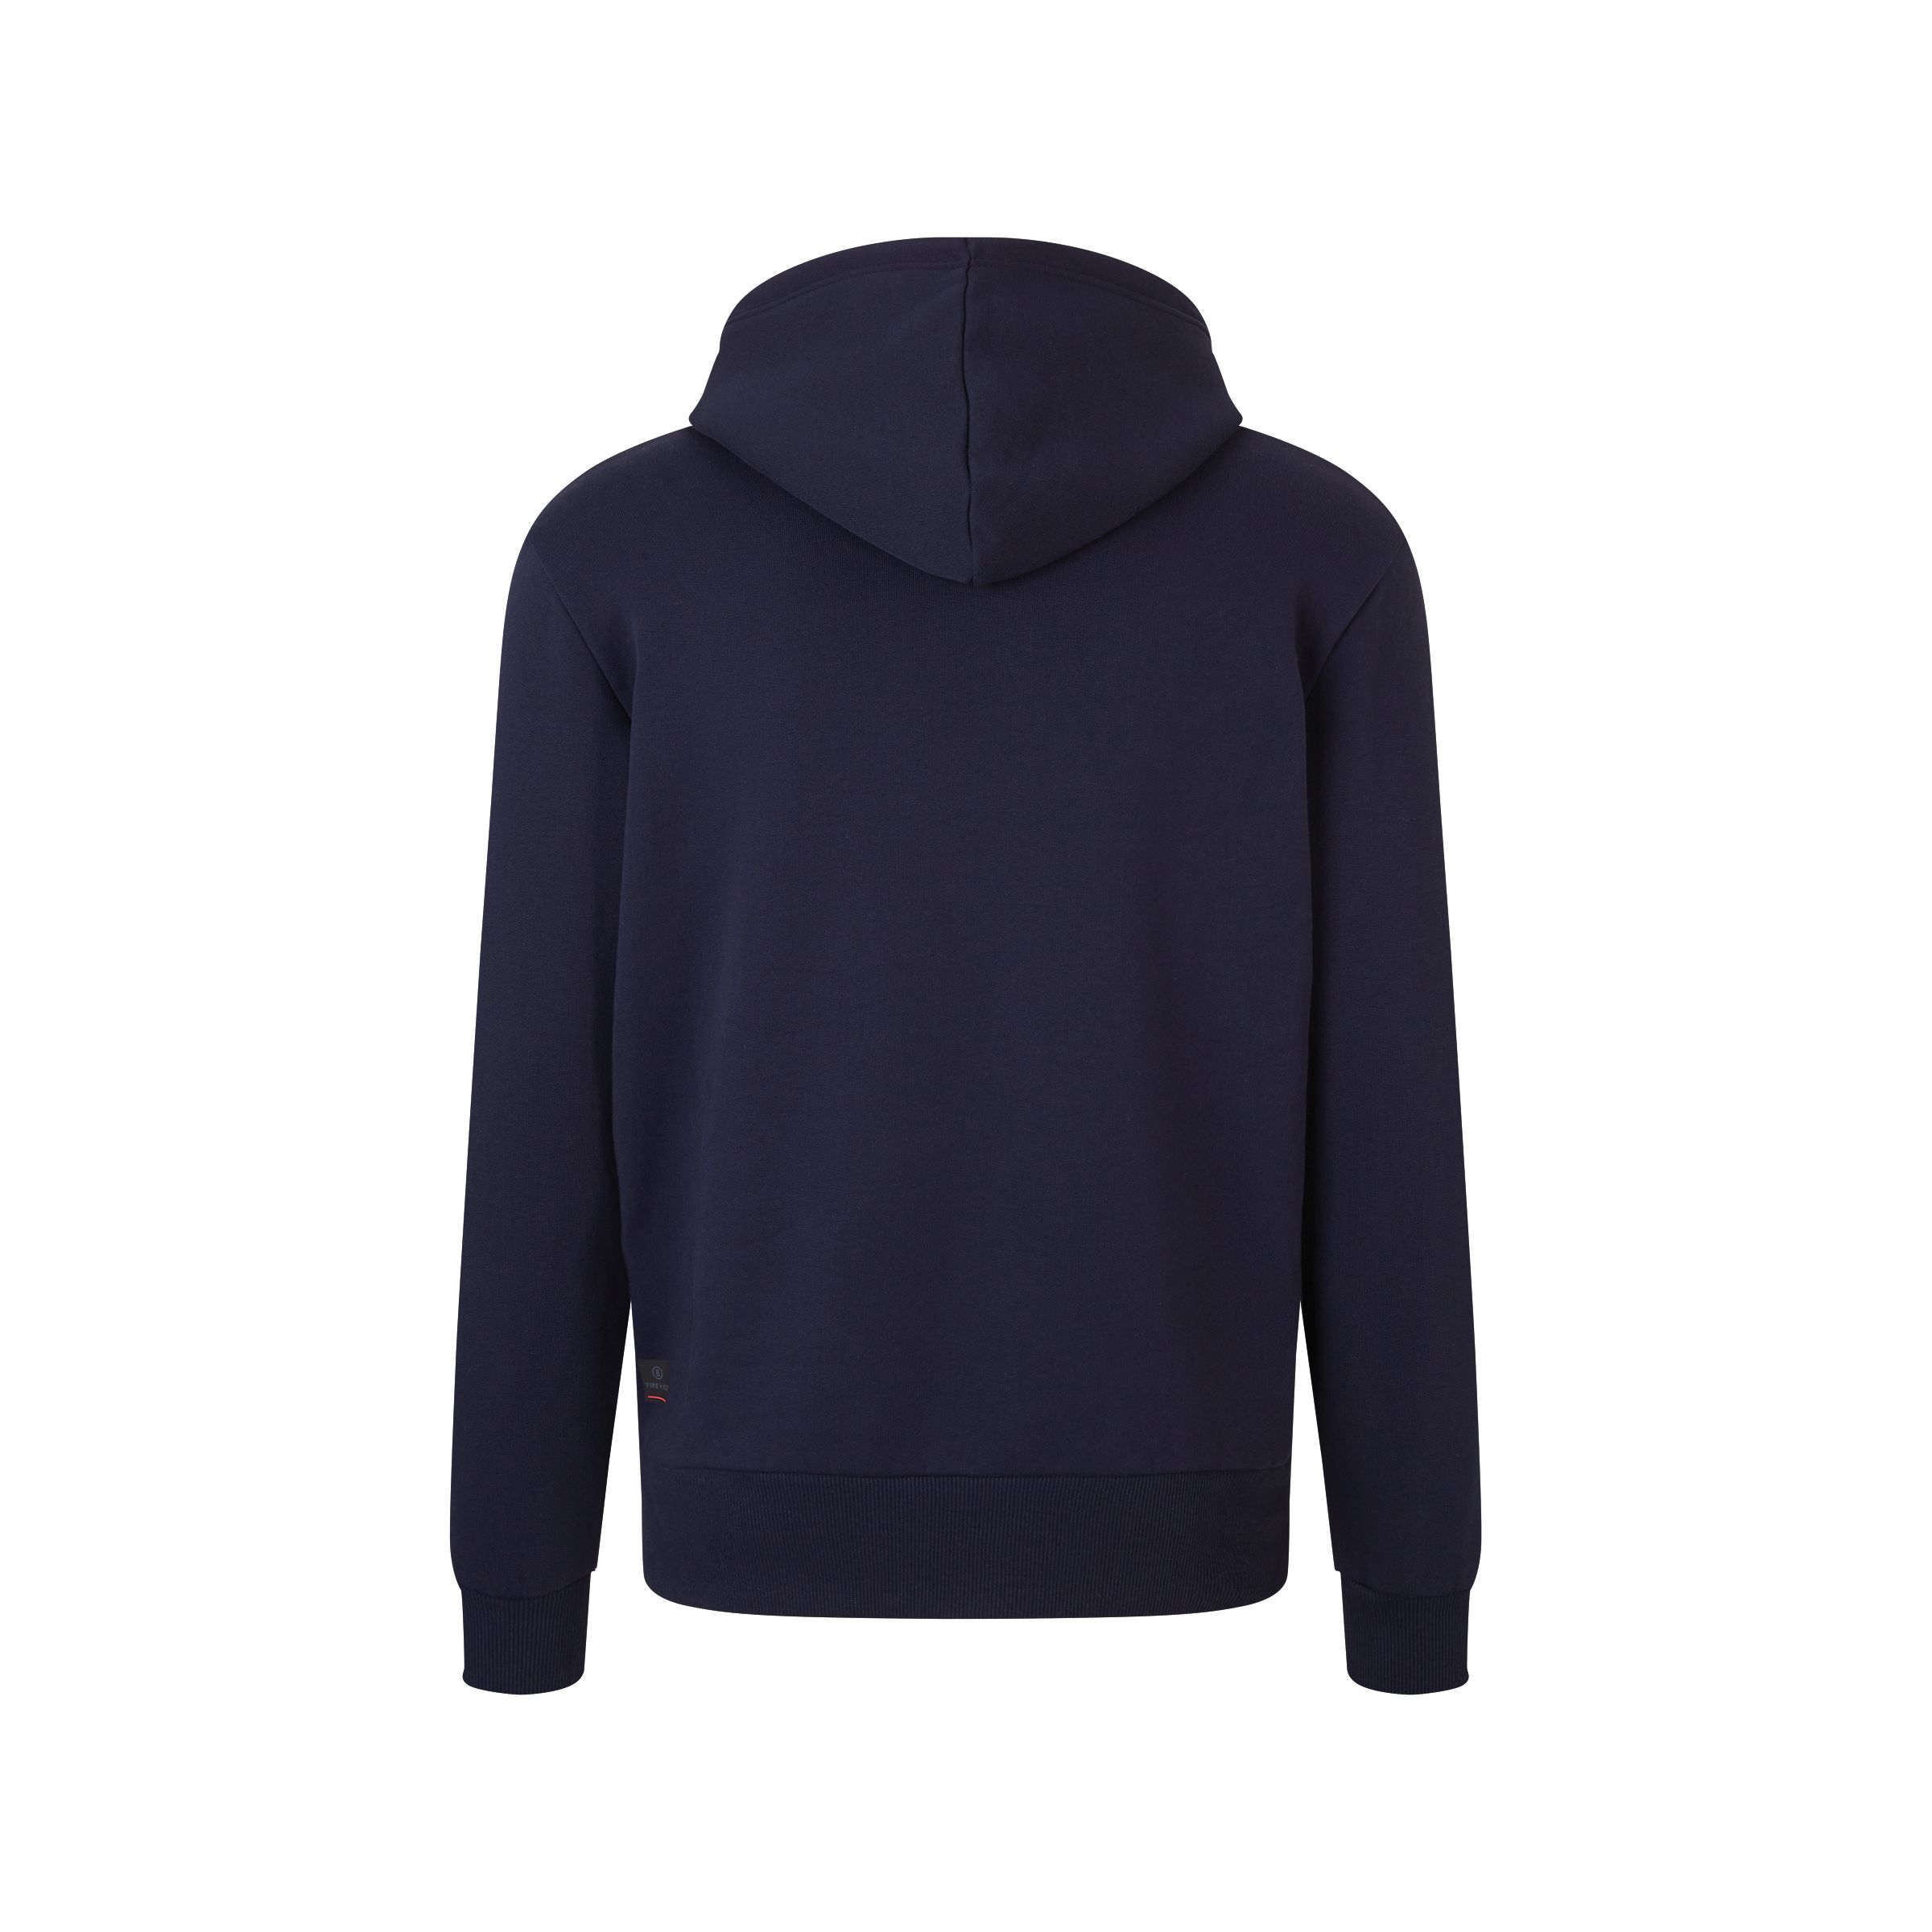 Îmbrăcăminte Casual -  bogner fire and ice COVELL Hoodie